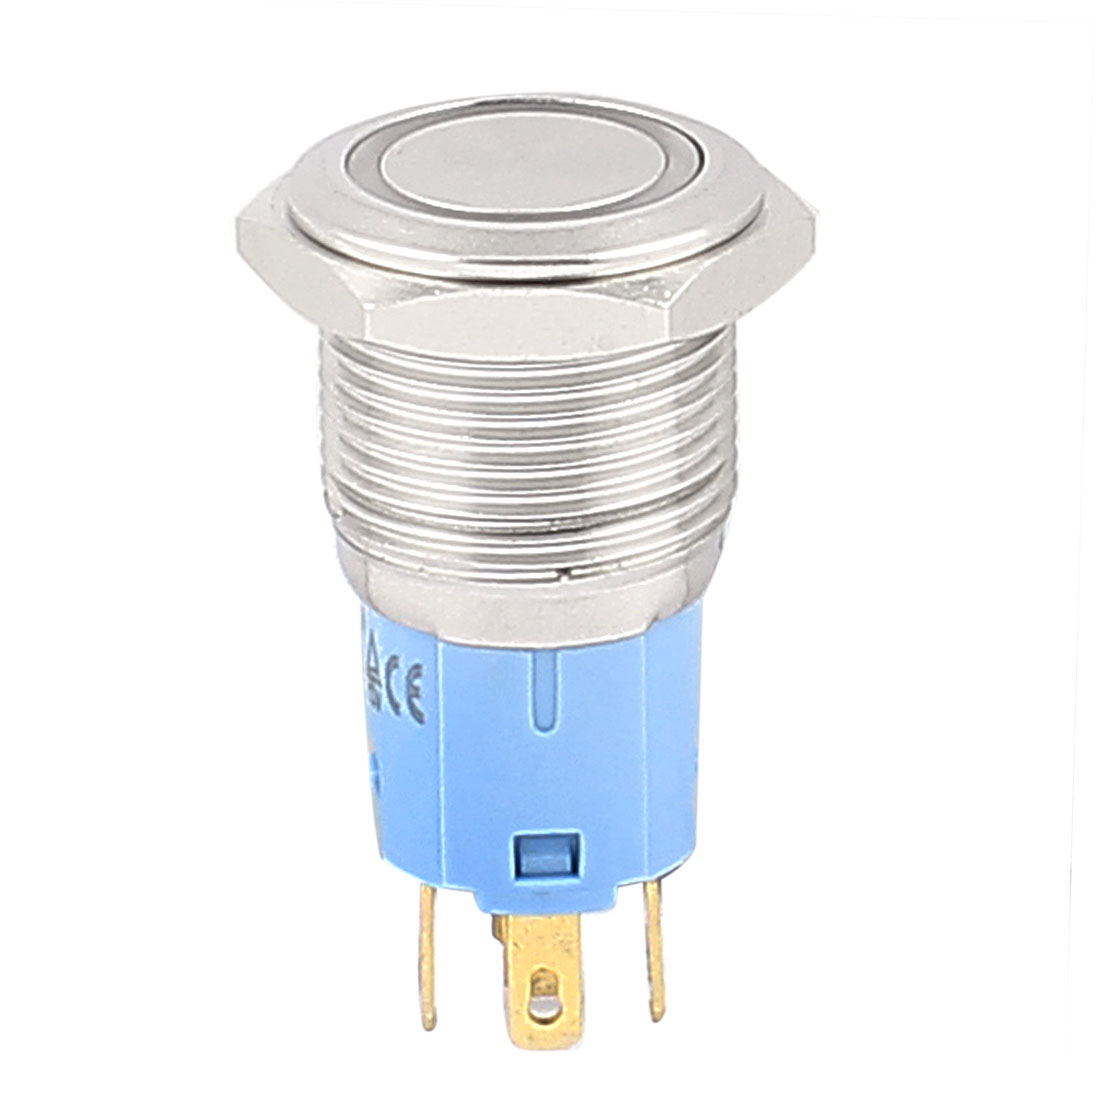 12V 16mm Thread Dia Yellow LED Angle Eyes Latching Metal Pushbutton Switch